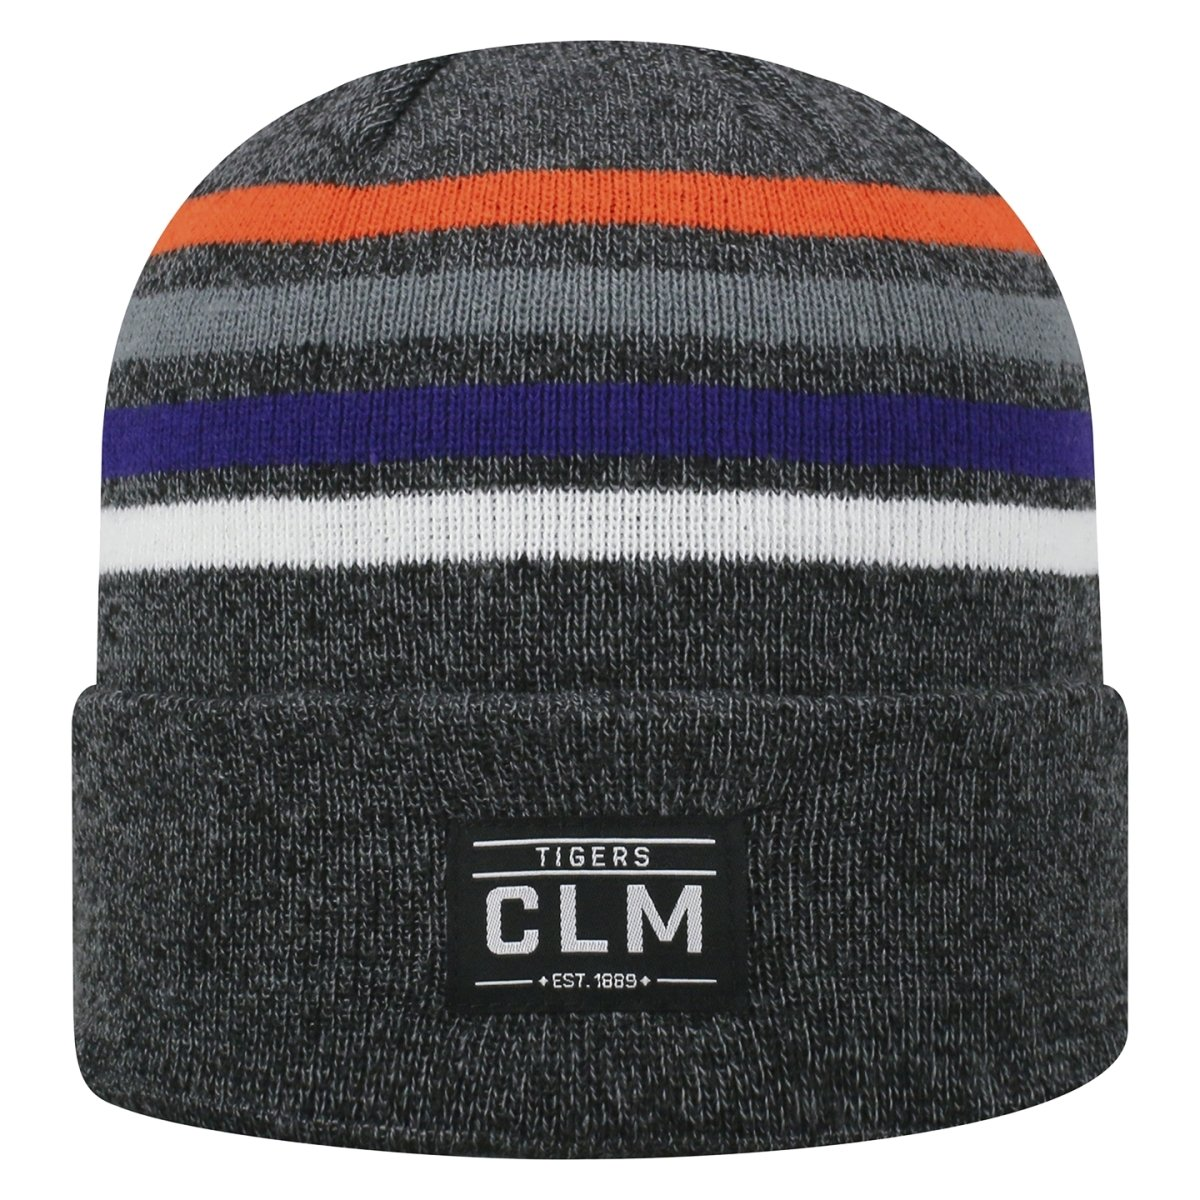 Top of the World Clemson Upland Knit Beanie - Mr. Knickerbocker